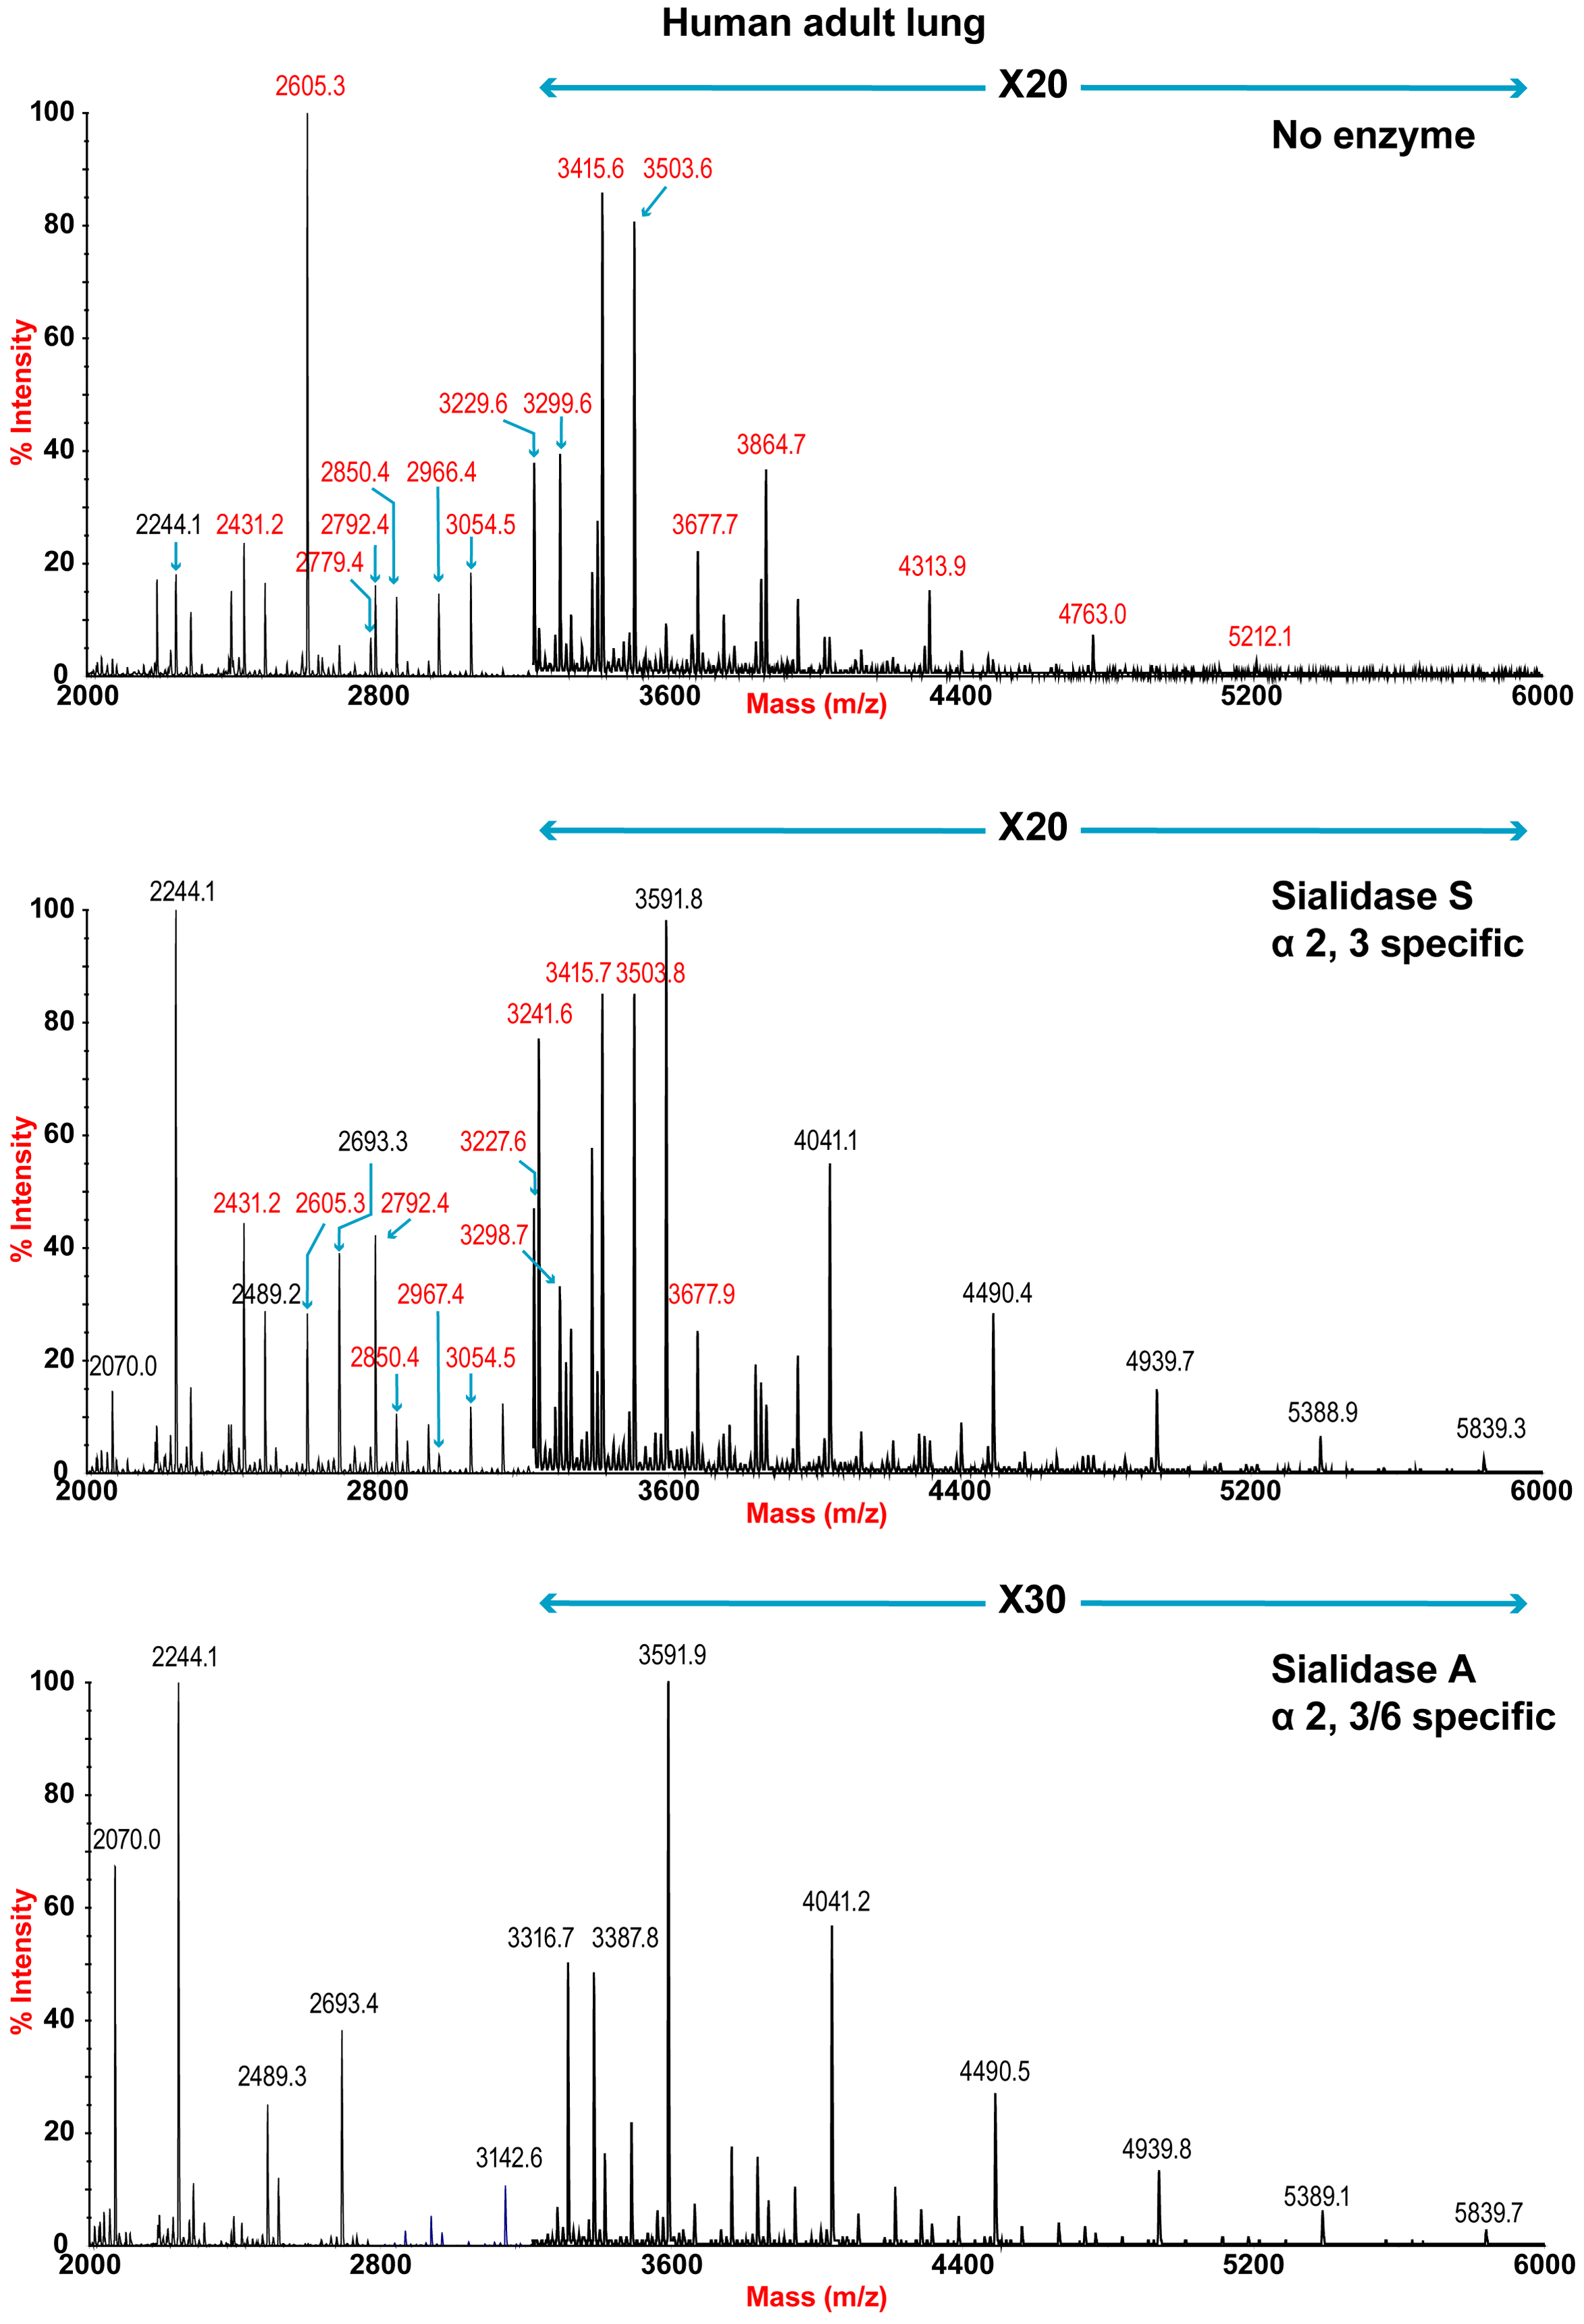 N-glycan profile of lung following sialidase treatment.